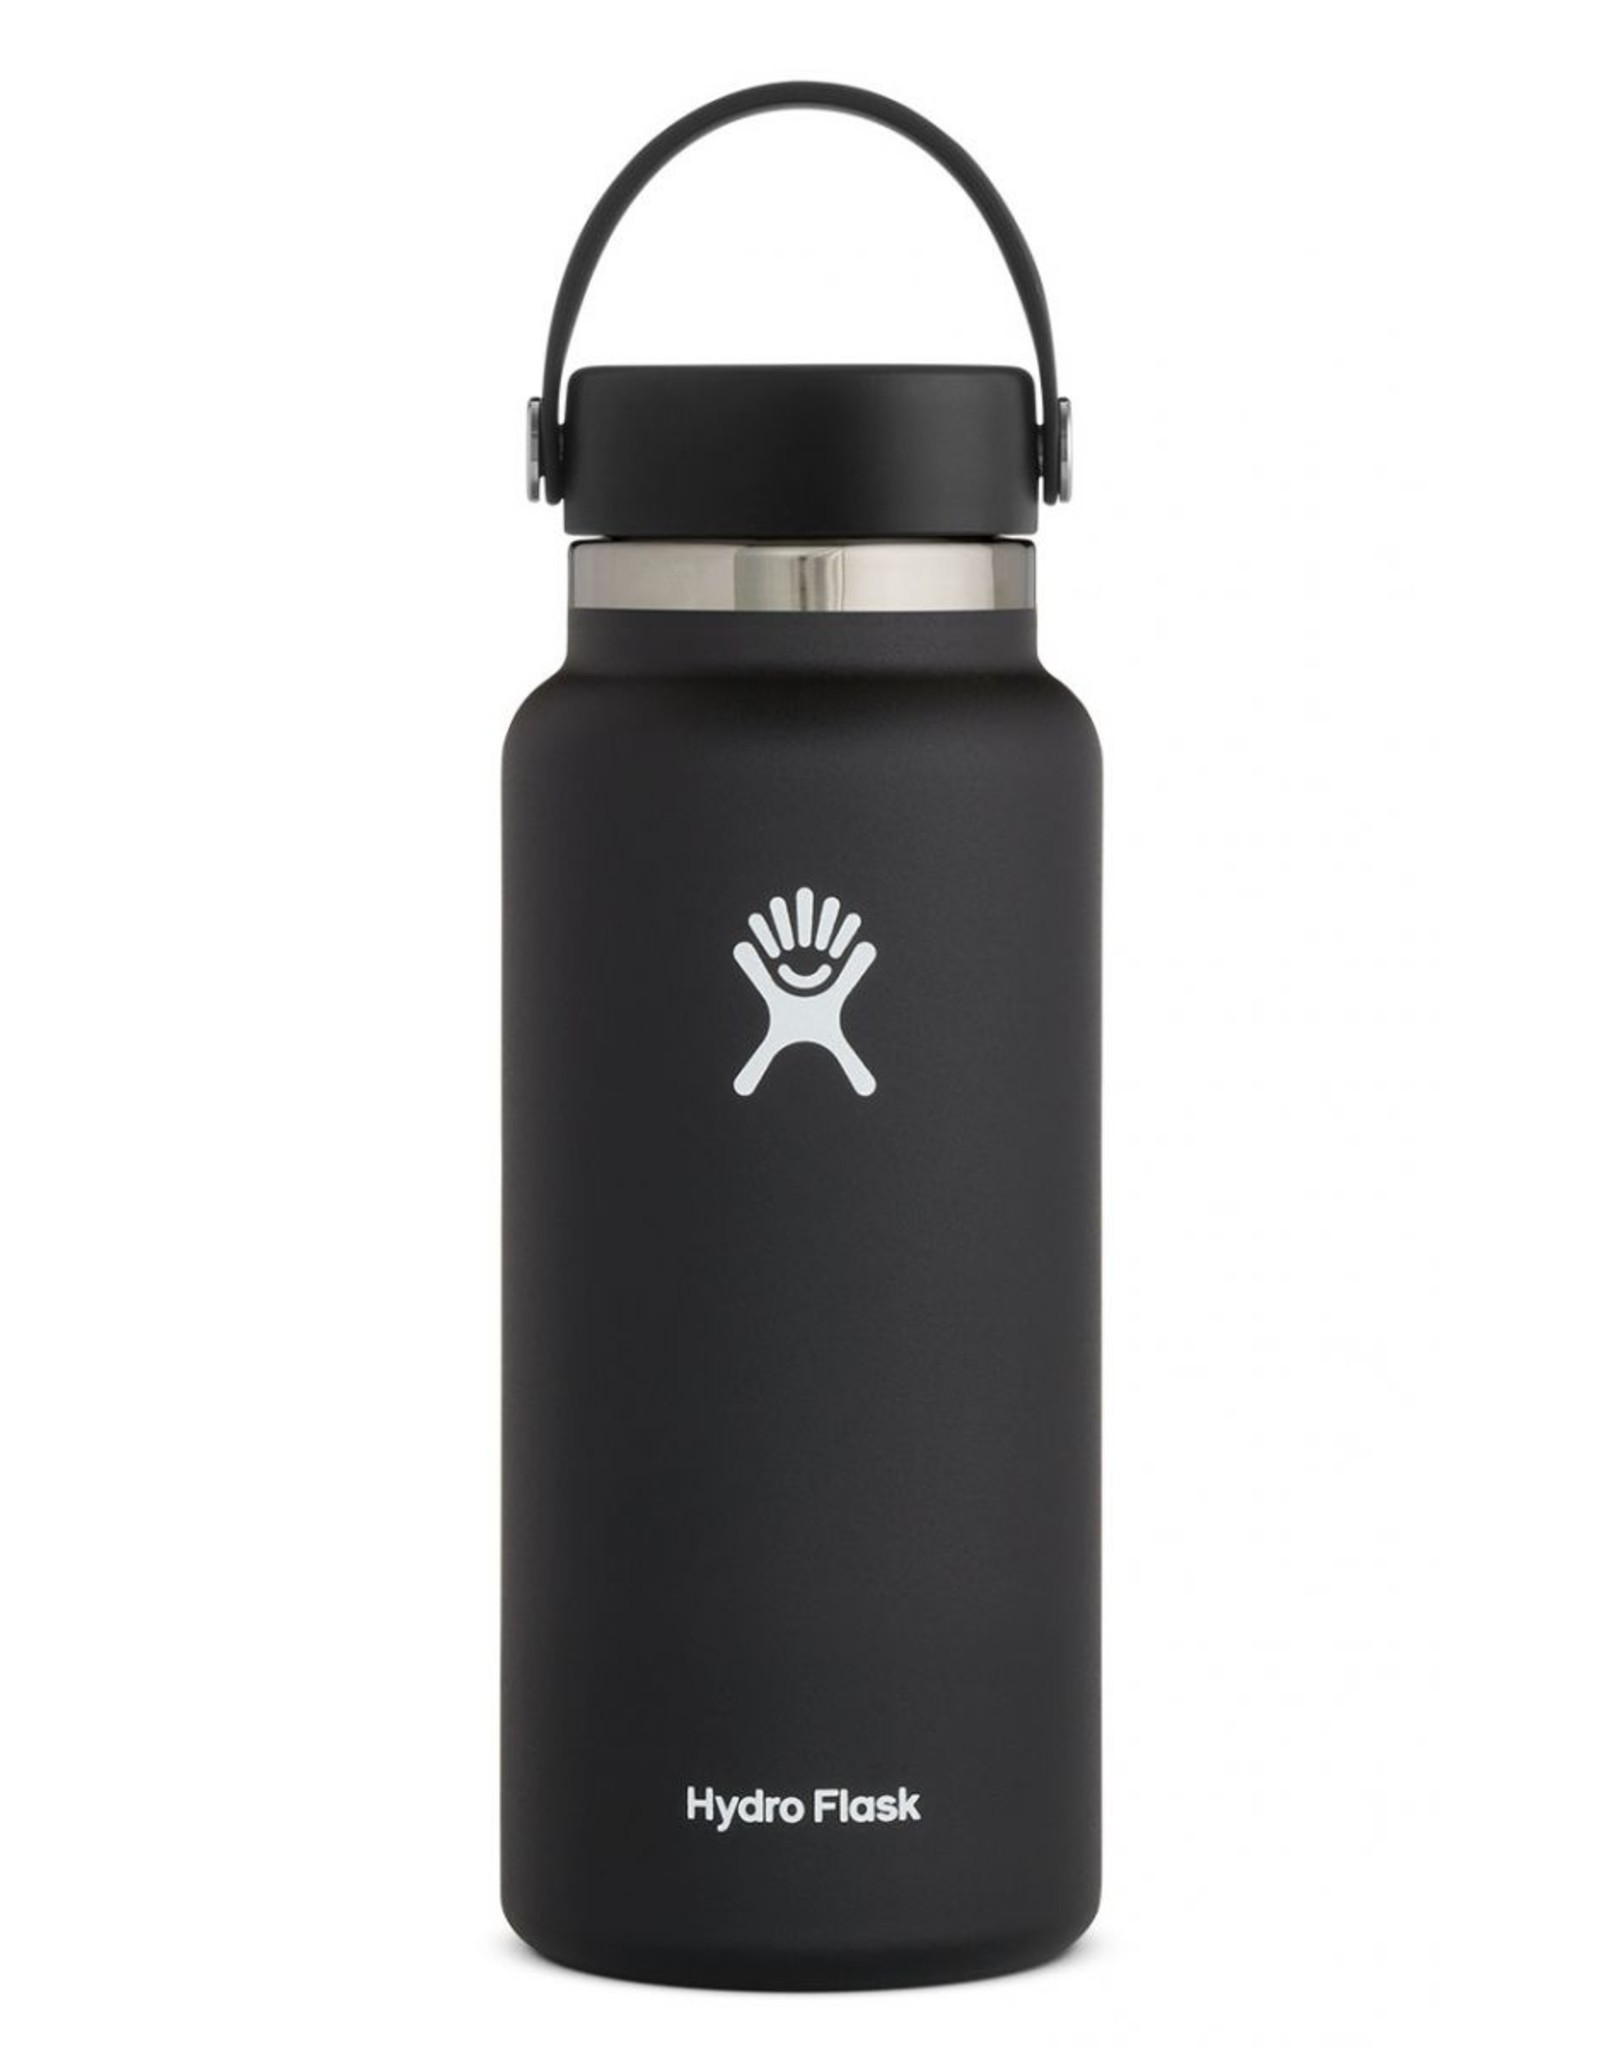 HYDRO FLASK HYDRO FLASK 32OZ WIDE MOUTH BOTTLE-BLACK